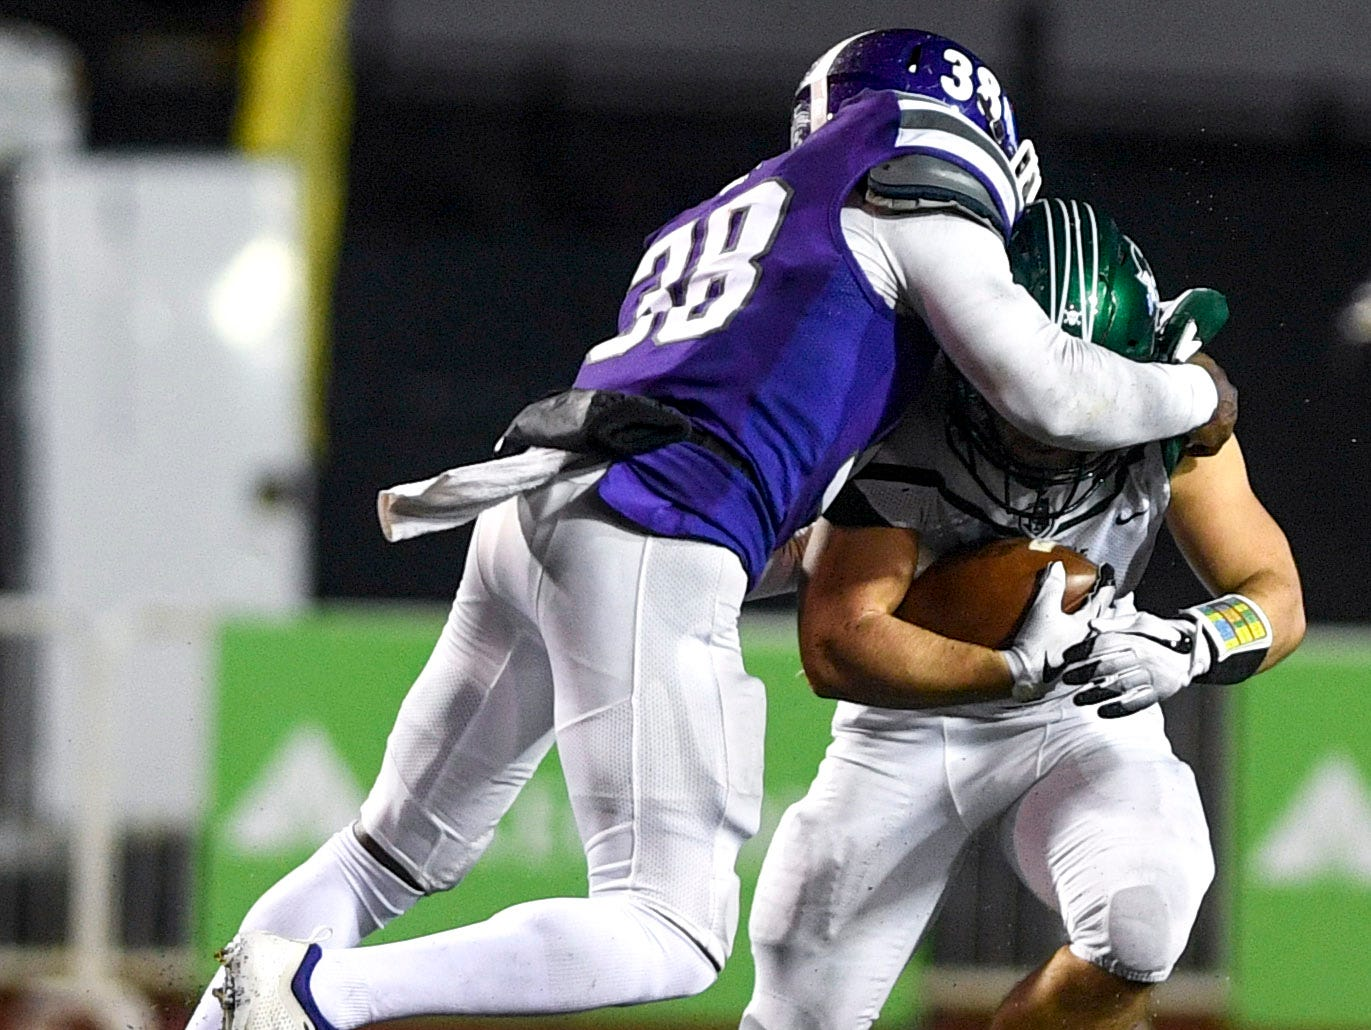 Haywood's Andrew Reed (38) tackles Greeneville's Garrin Shuffler (5) during the Class 4A Blue Cross Bowl between Haywood and Greeneville at Tennessee Tech's Tucker Stadium in Cookeville, Tenn., on Thursday, Nov. 29, 2018.